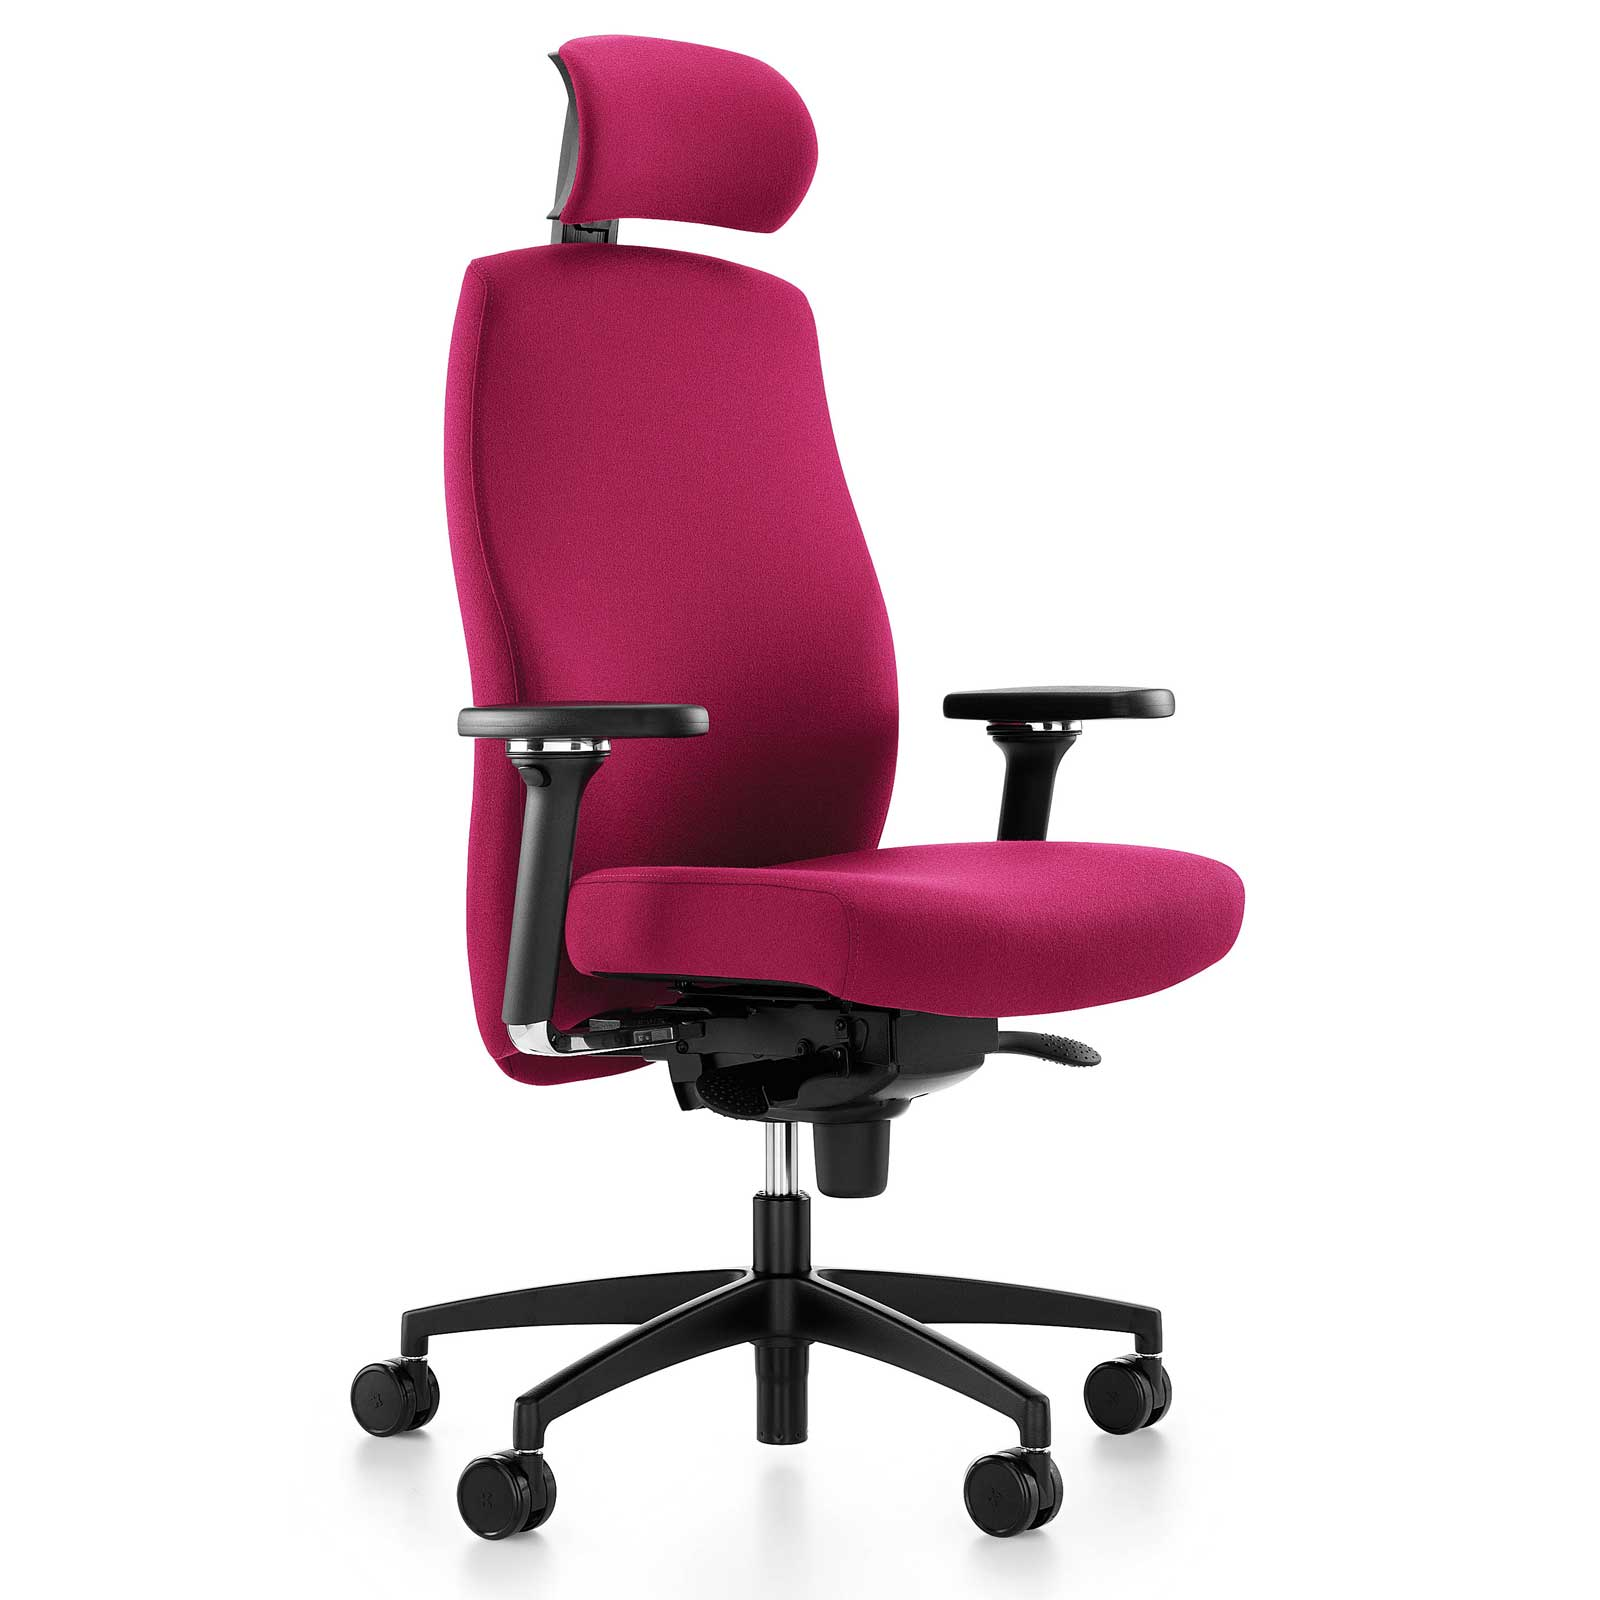 Cheap Task Chairs for Home fice Equipment